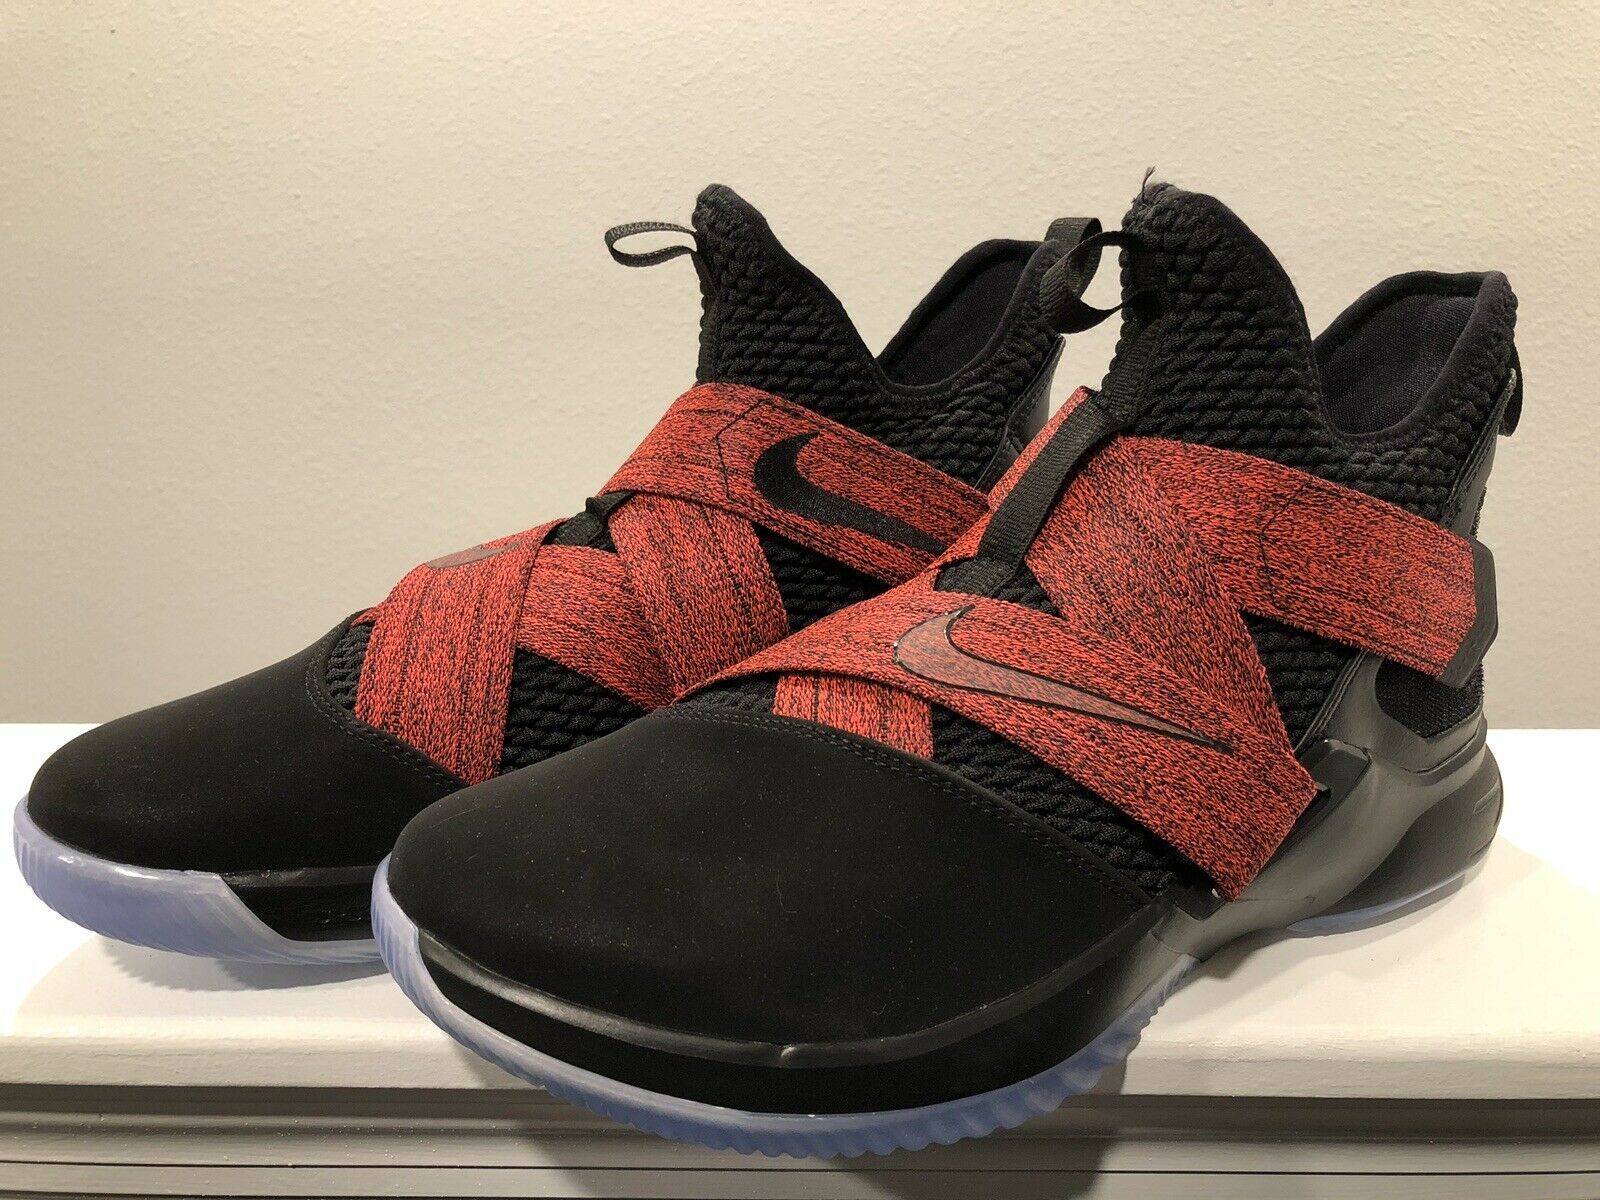 Nike Lebron Soldier XII 12 Dimensioni 11.5 AO2609 -003 Straps  rosse Men's Basketball  best-seller